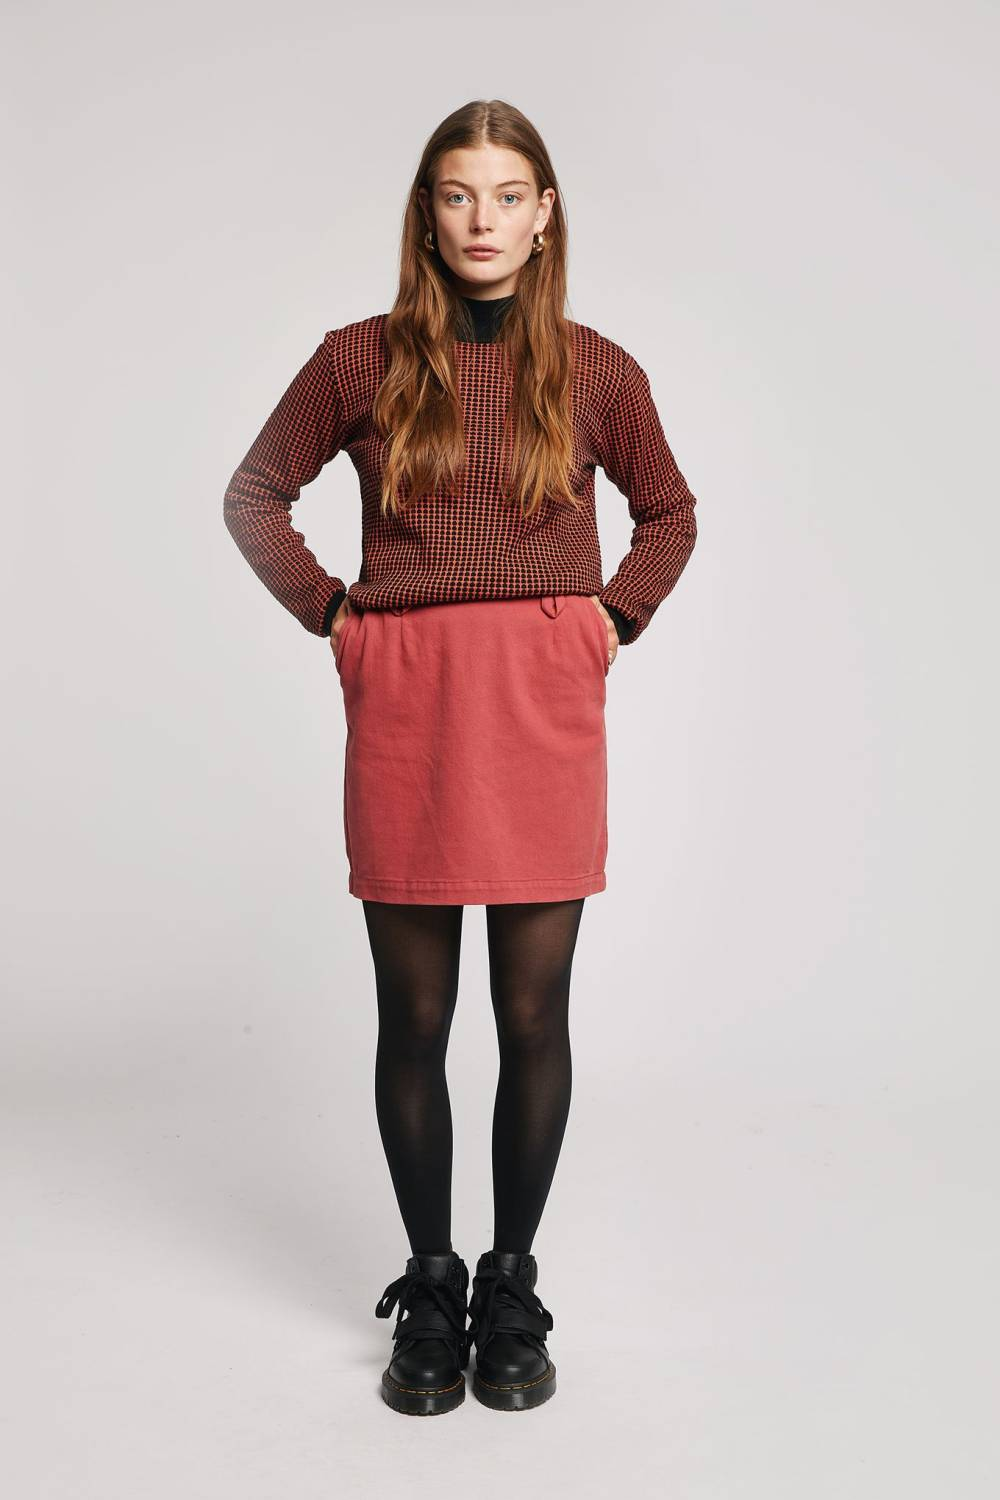 komodo sustainable affordable knitwear label